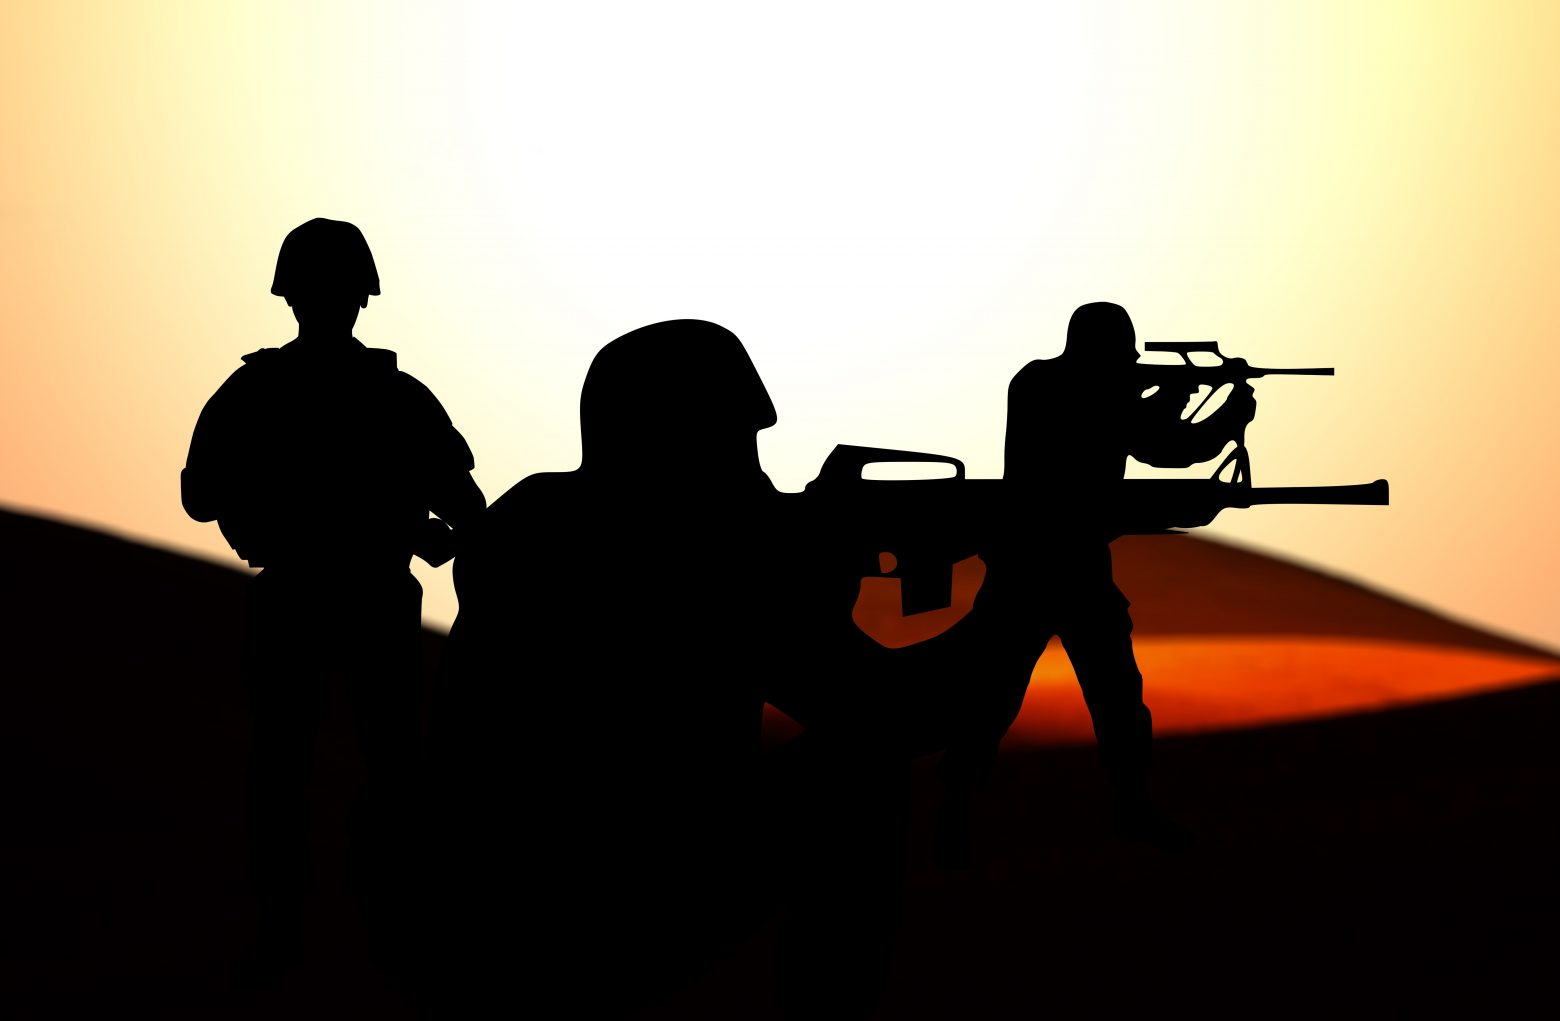 soldiers-2204255